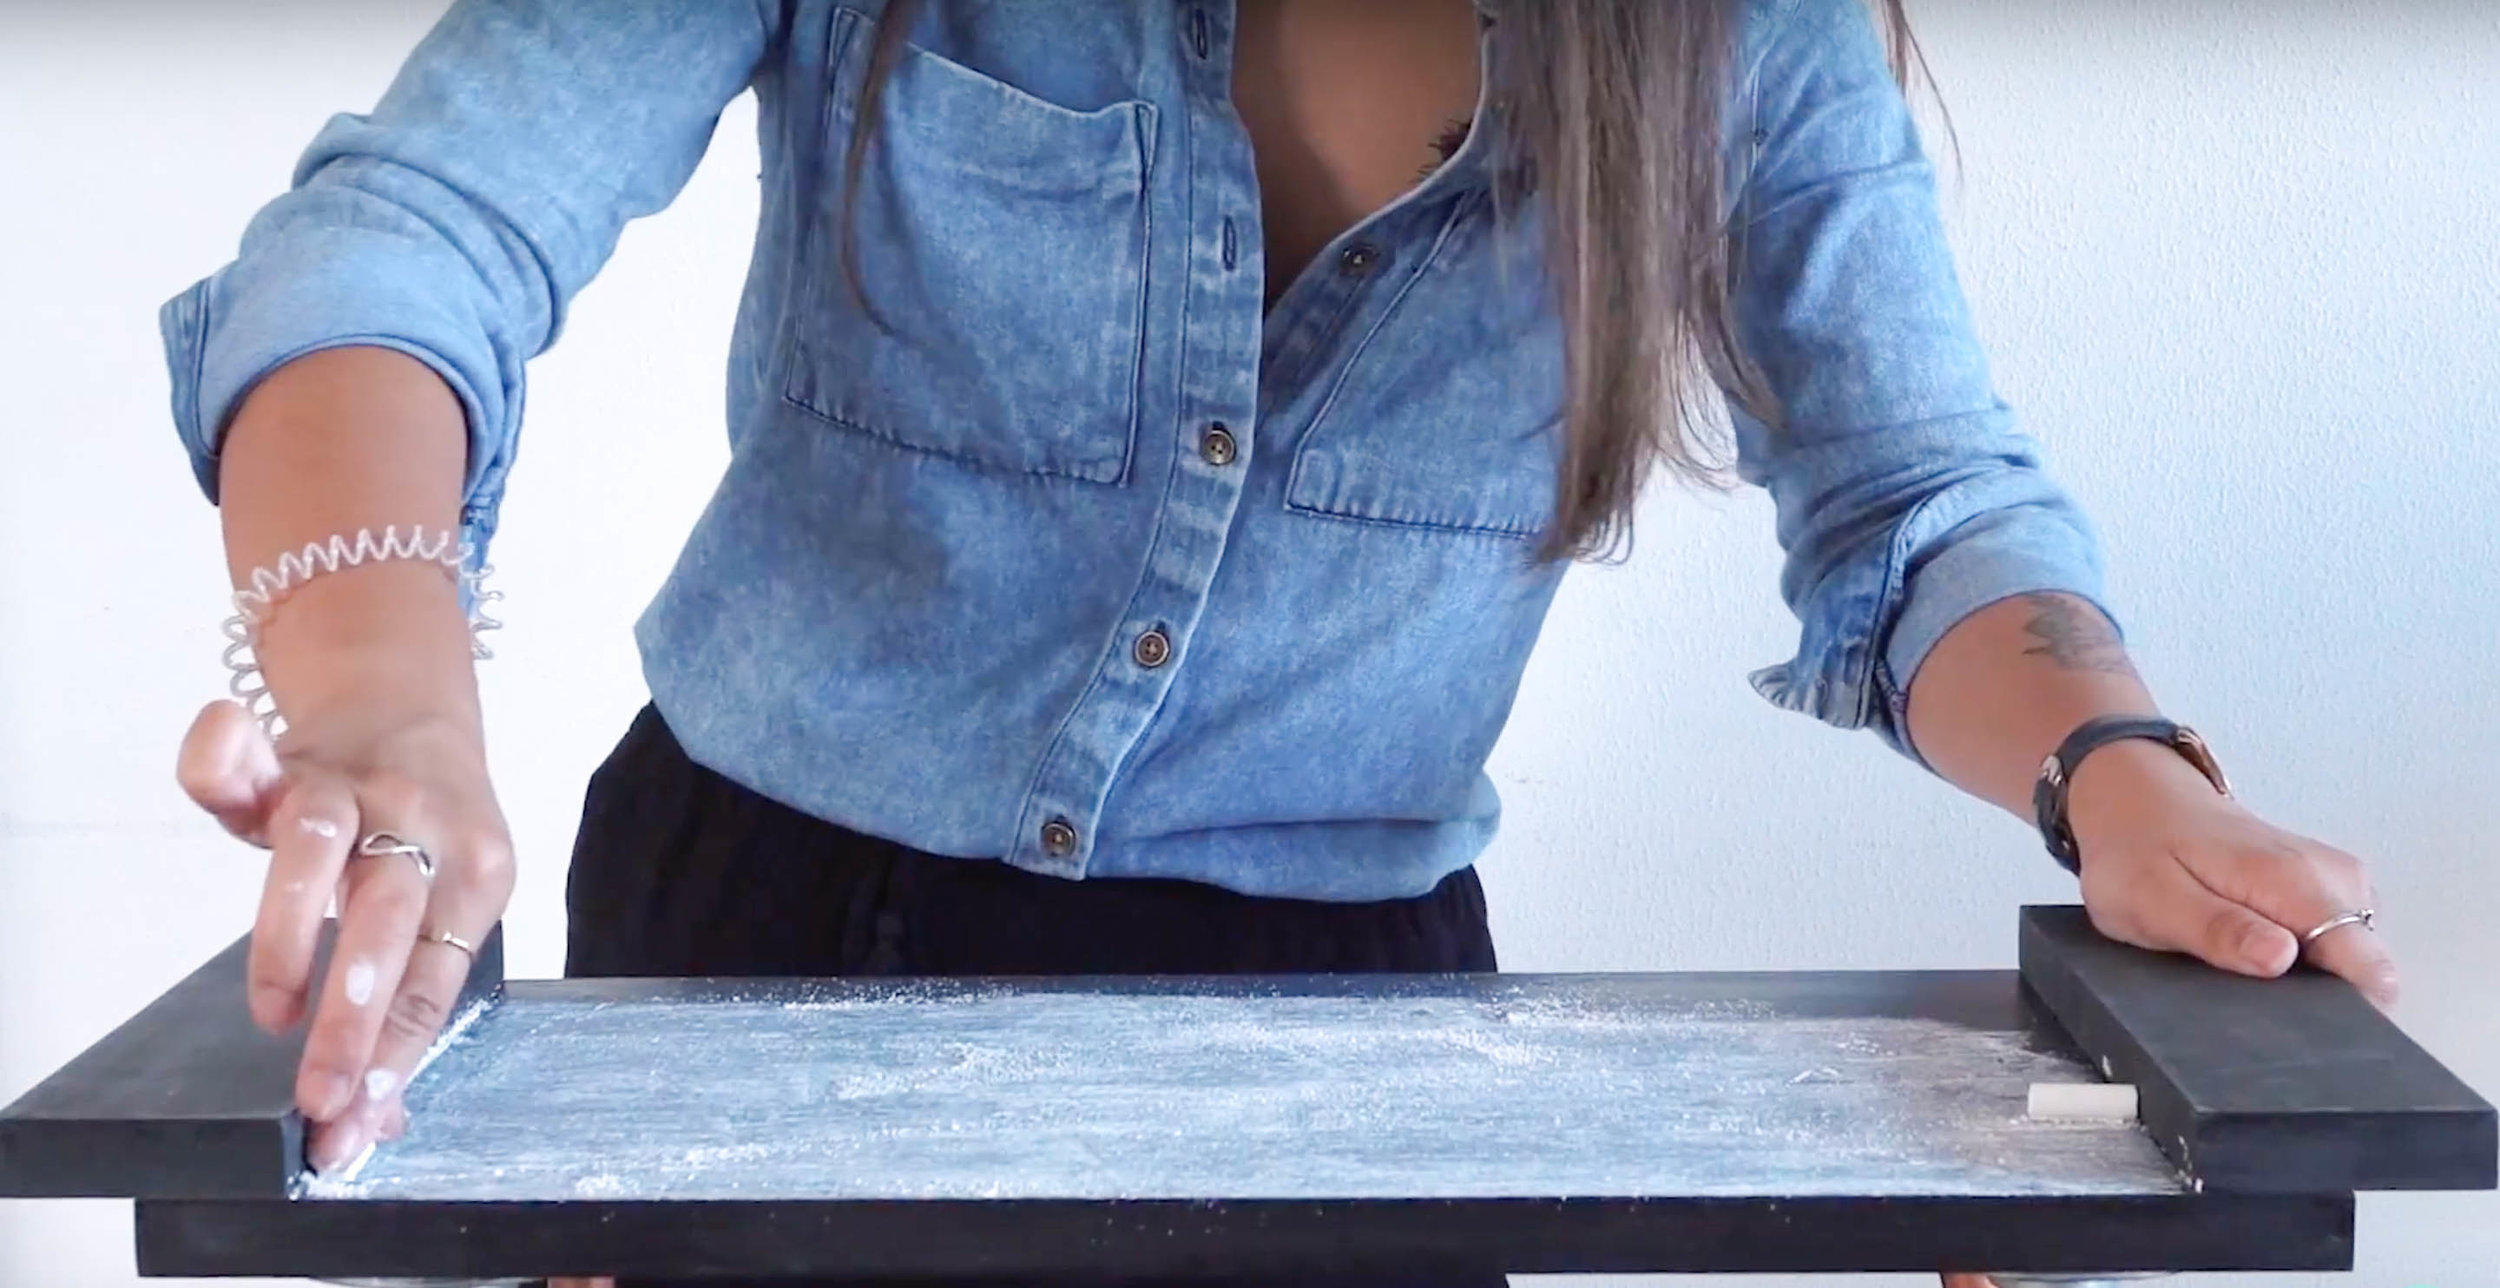 Prime the surface with chalk -